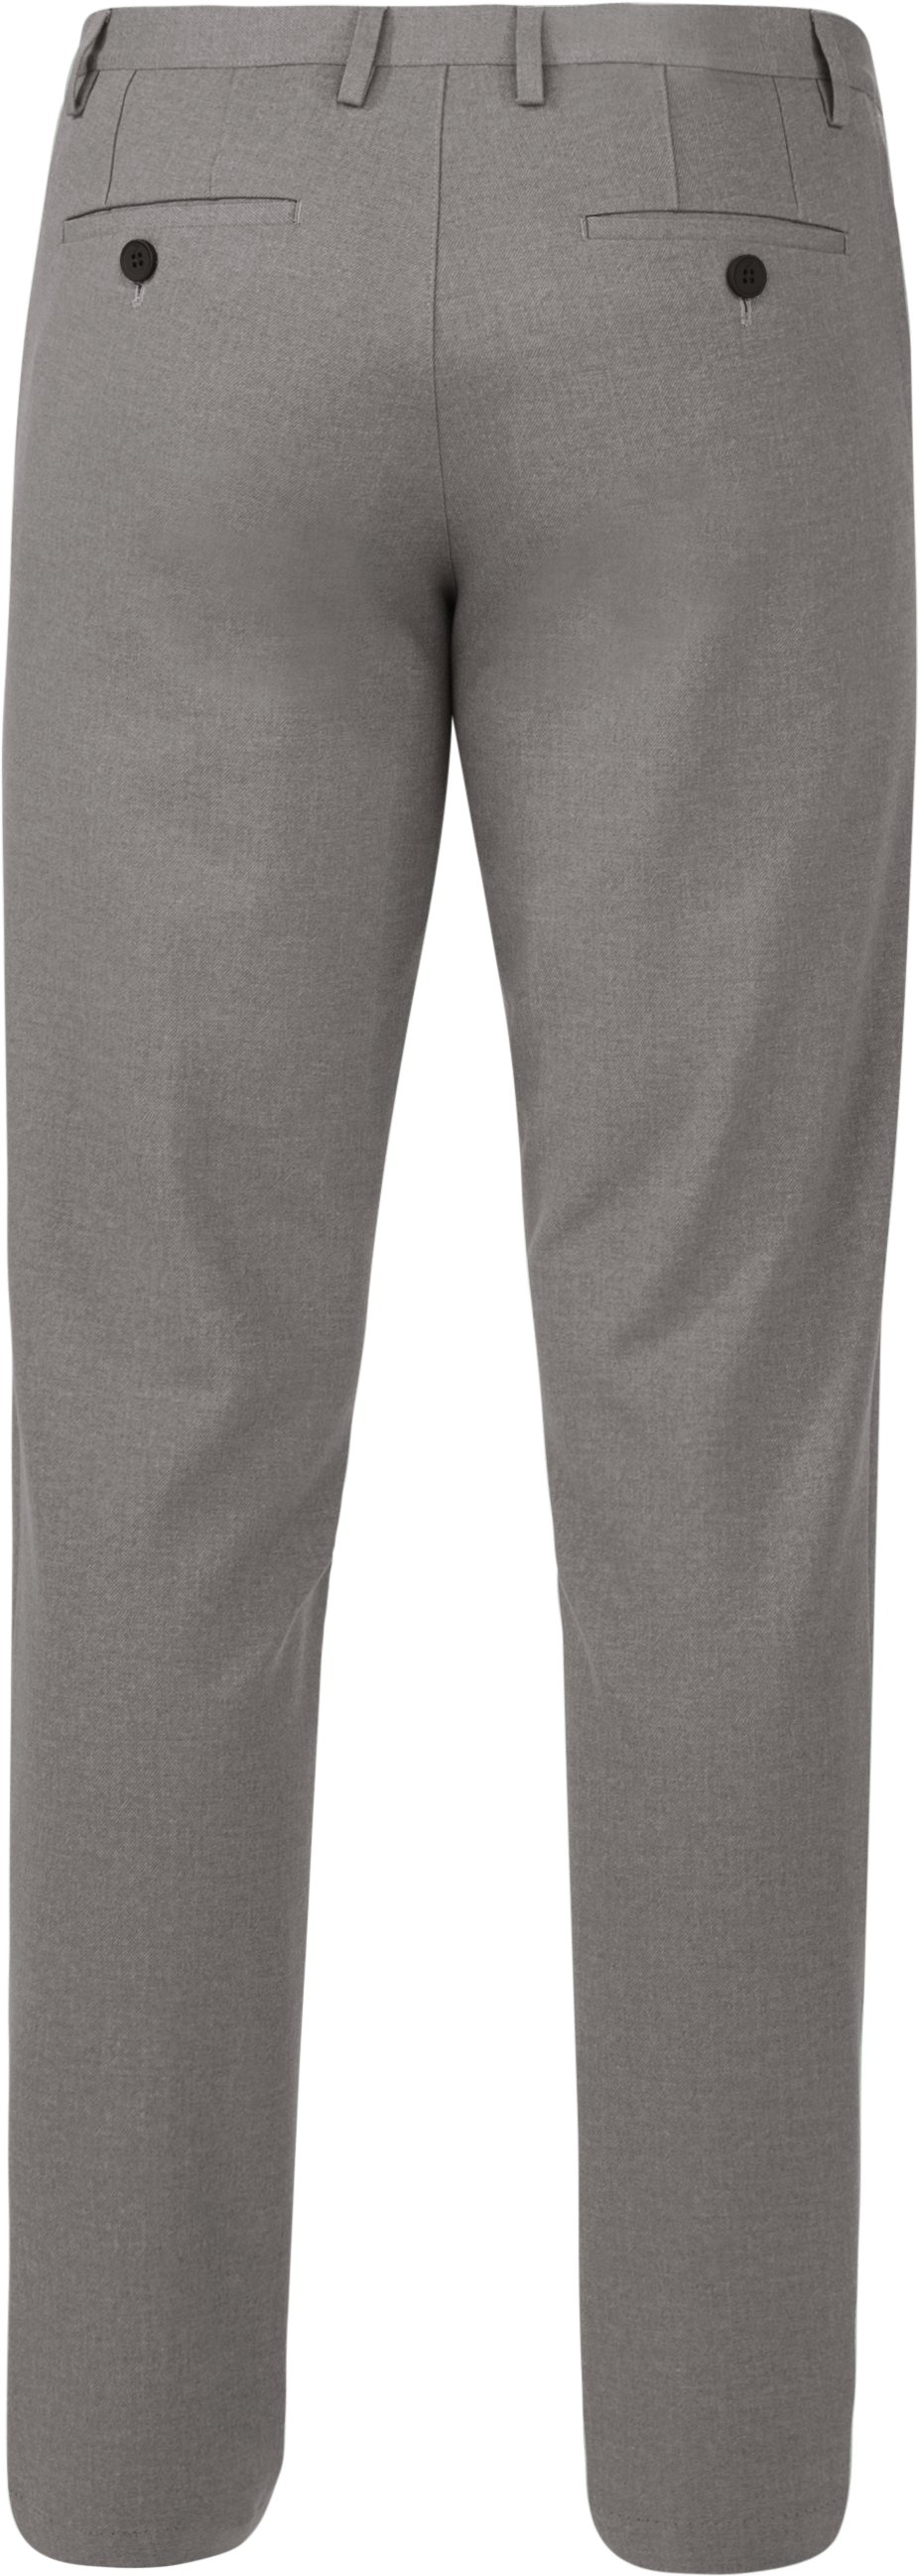 Tailored Suiting Trouser, LIGHT HEATHER GRAY, undefined